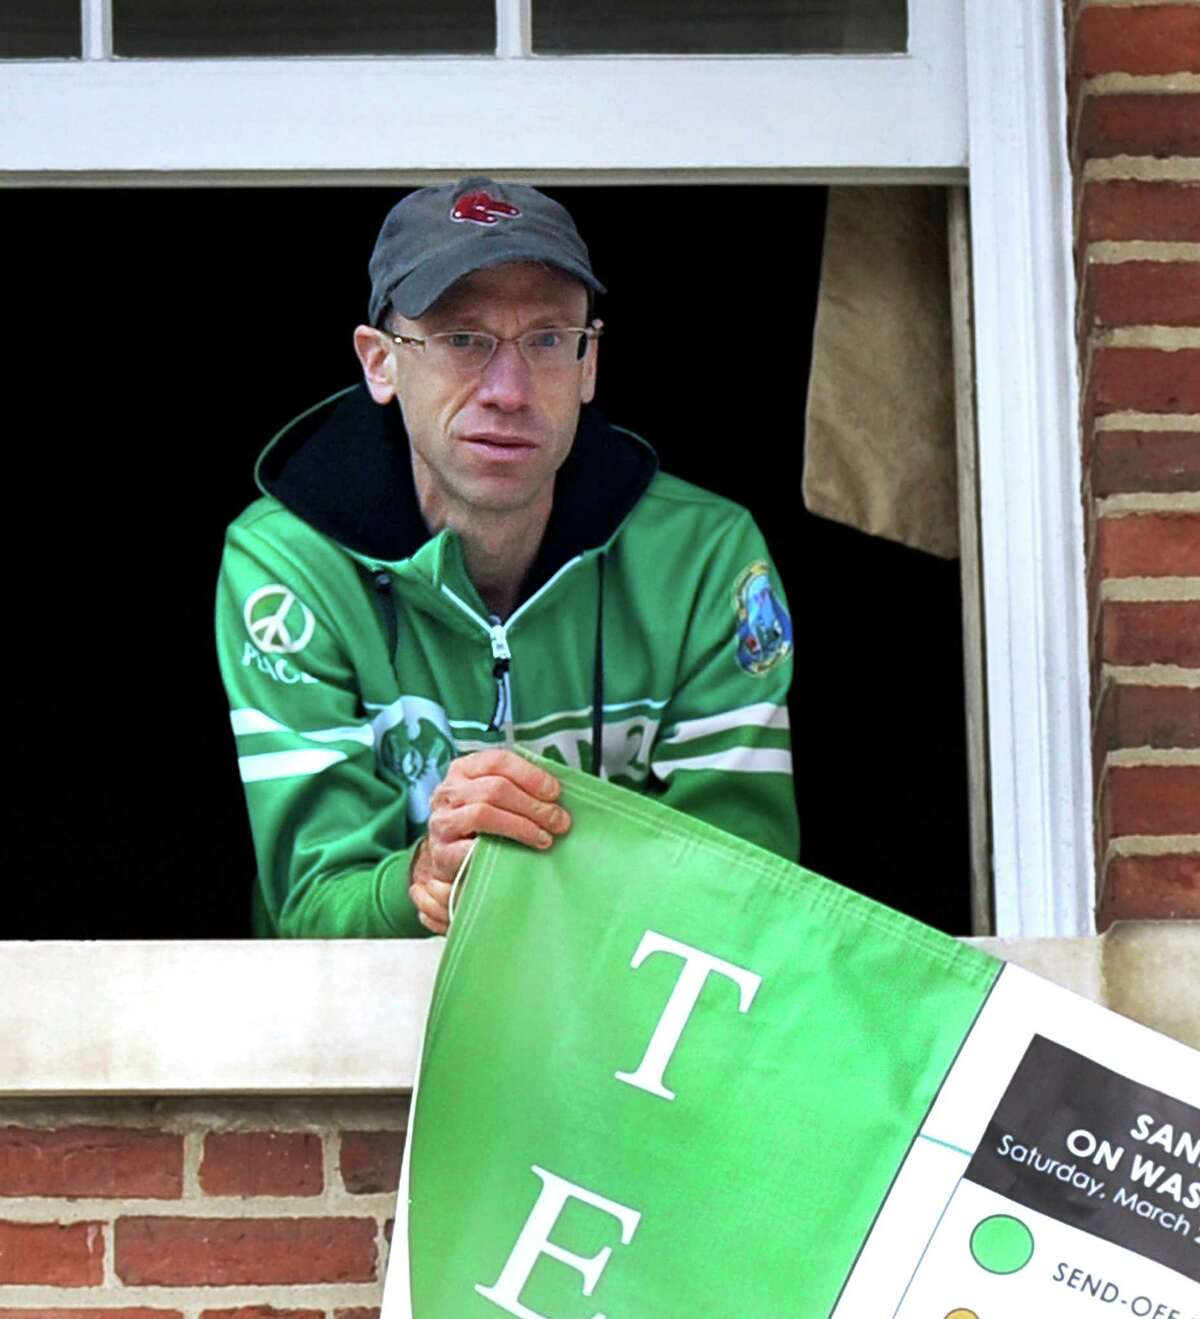 Monte Frank, the founder of the Sandy Hook Ride on Washington, hung a banner in preparartion for the Saturday morning send-off at the Edmond Town Hall that starts this year's ride. Friday, March 27, 2015.